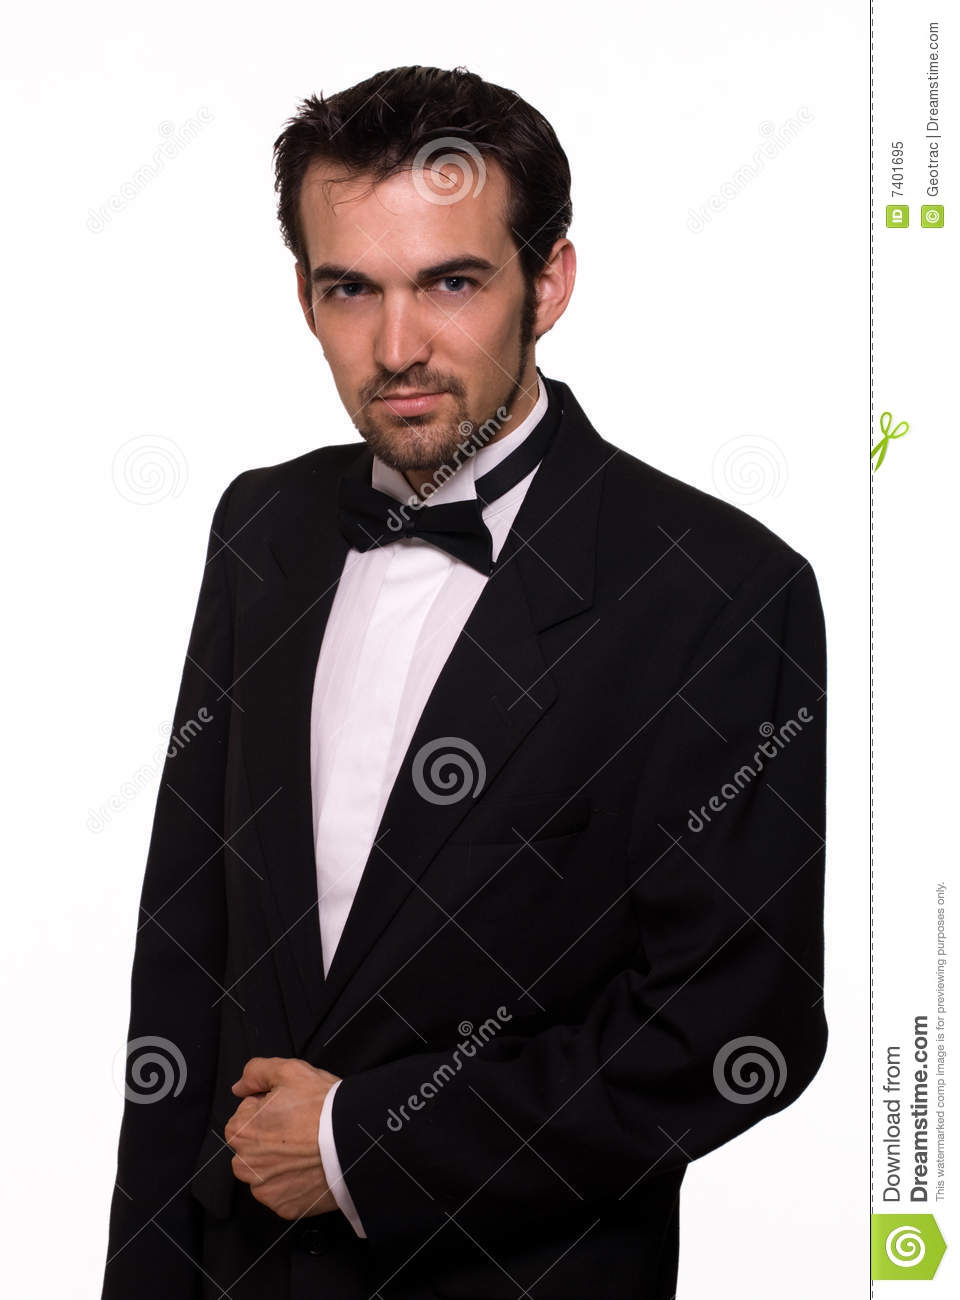 Handsome Man In Tuxedo Royalty Free Stock Photo - Image ...